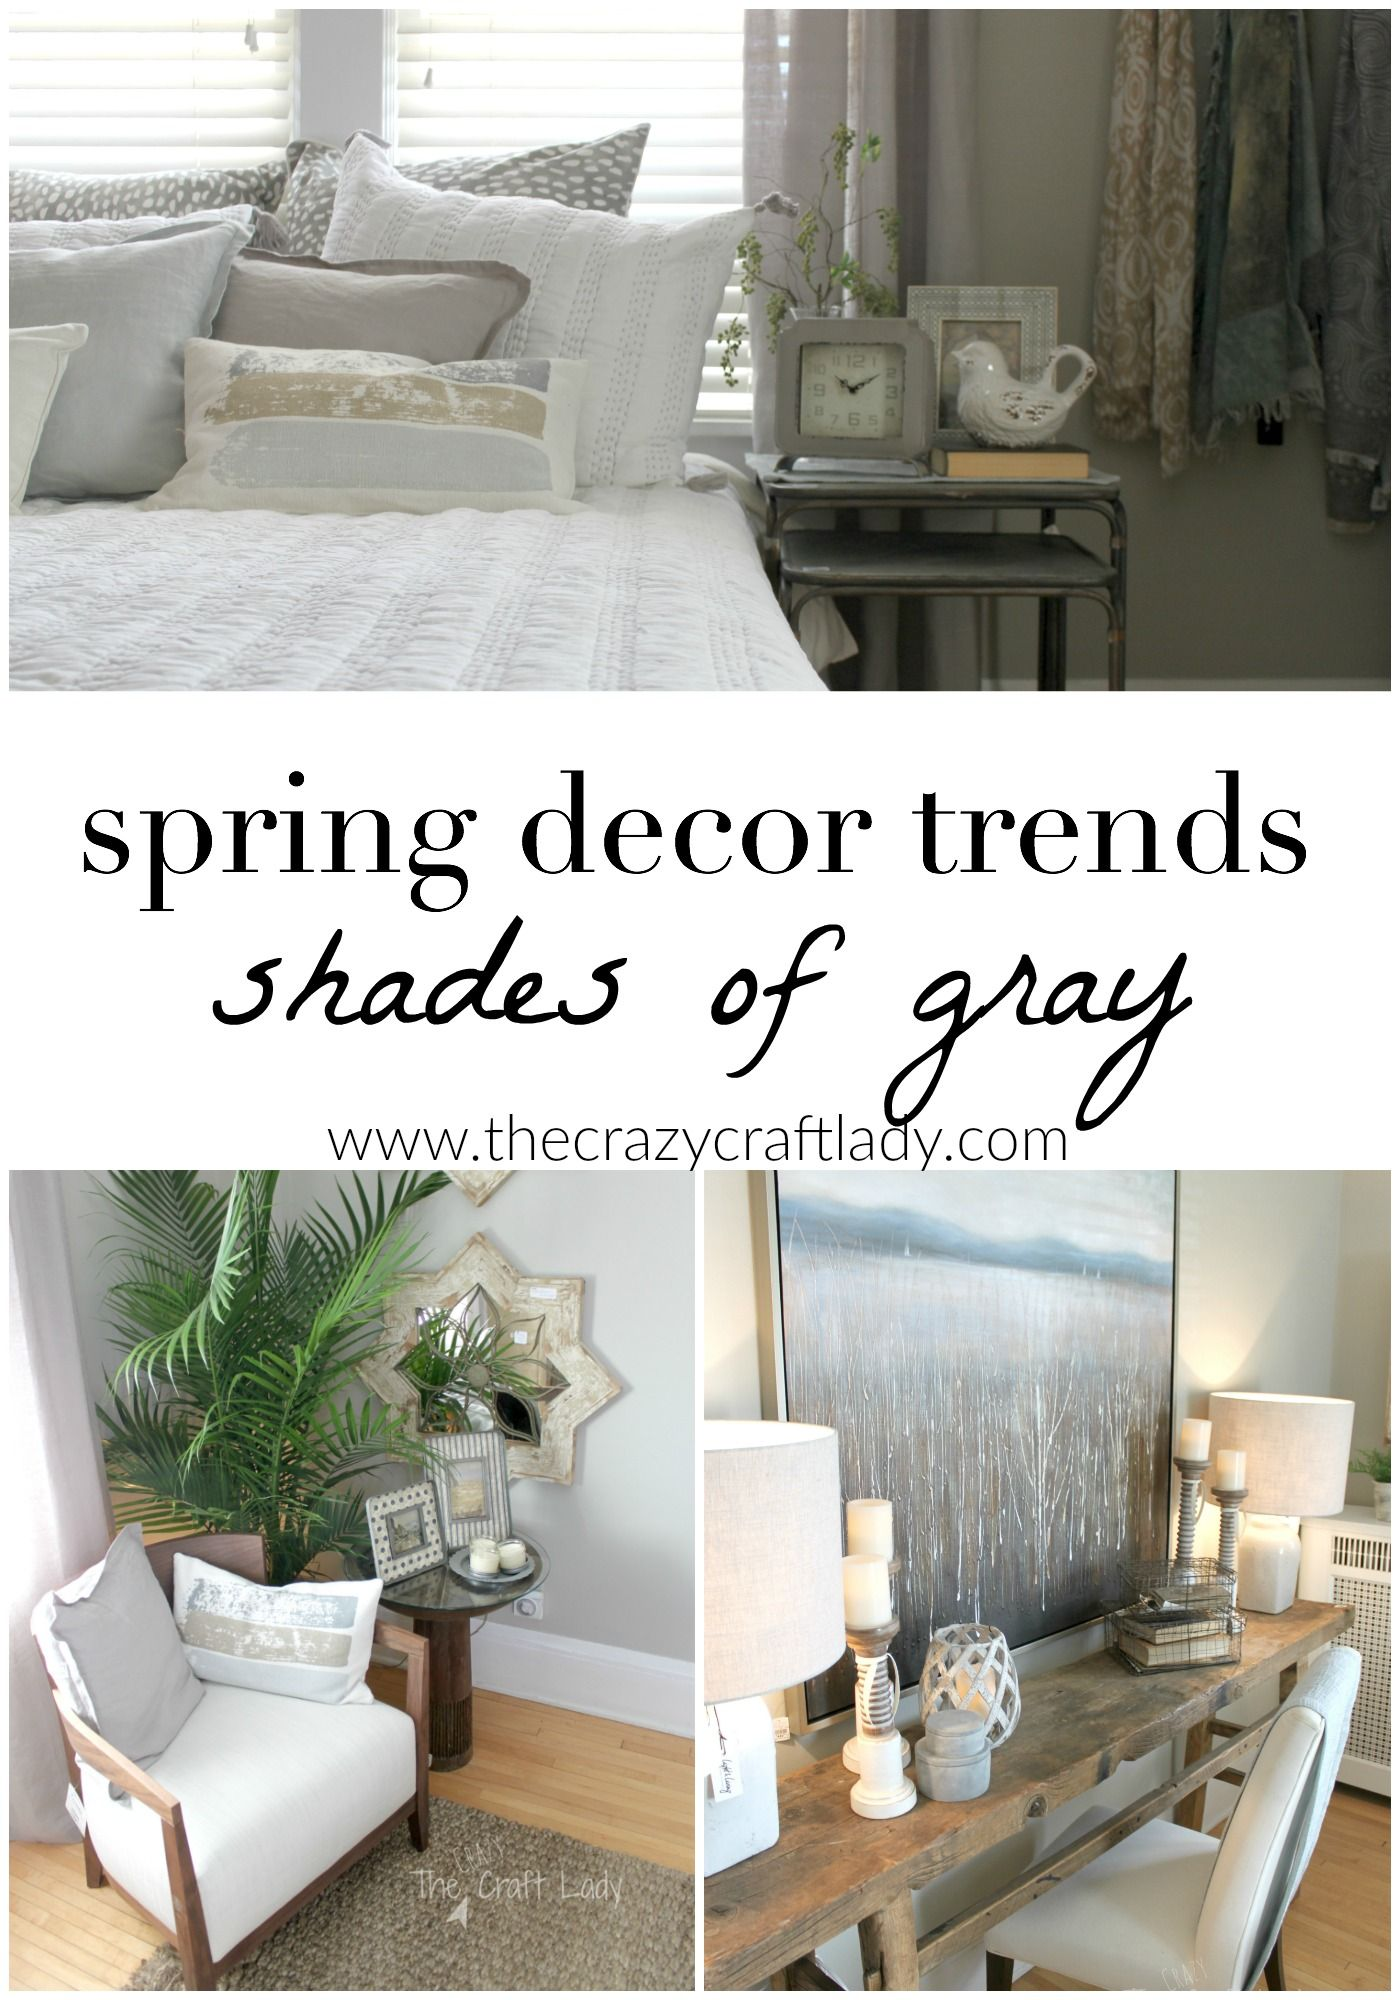 My Favorite Spring Decor Trends | Spring, Holiday decorating and ...